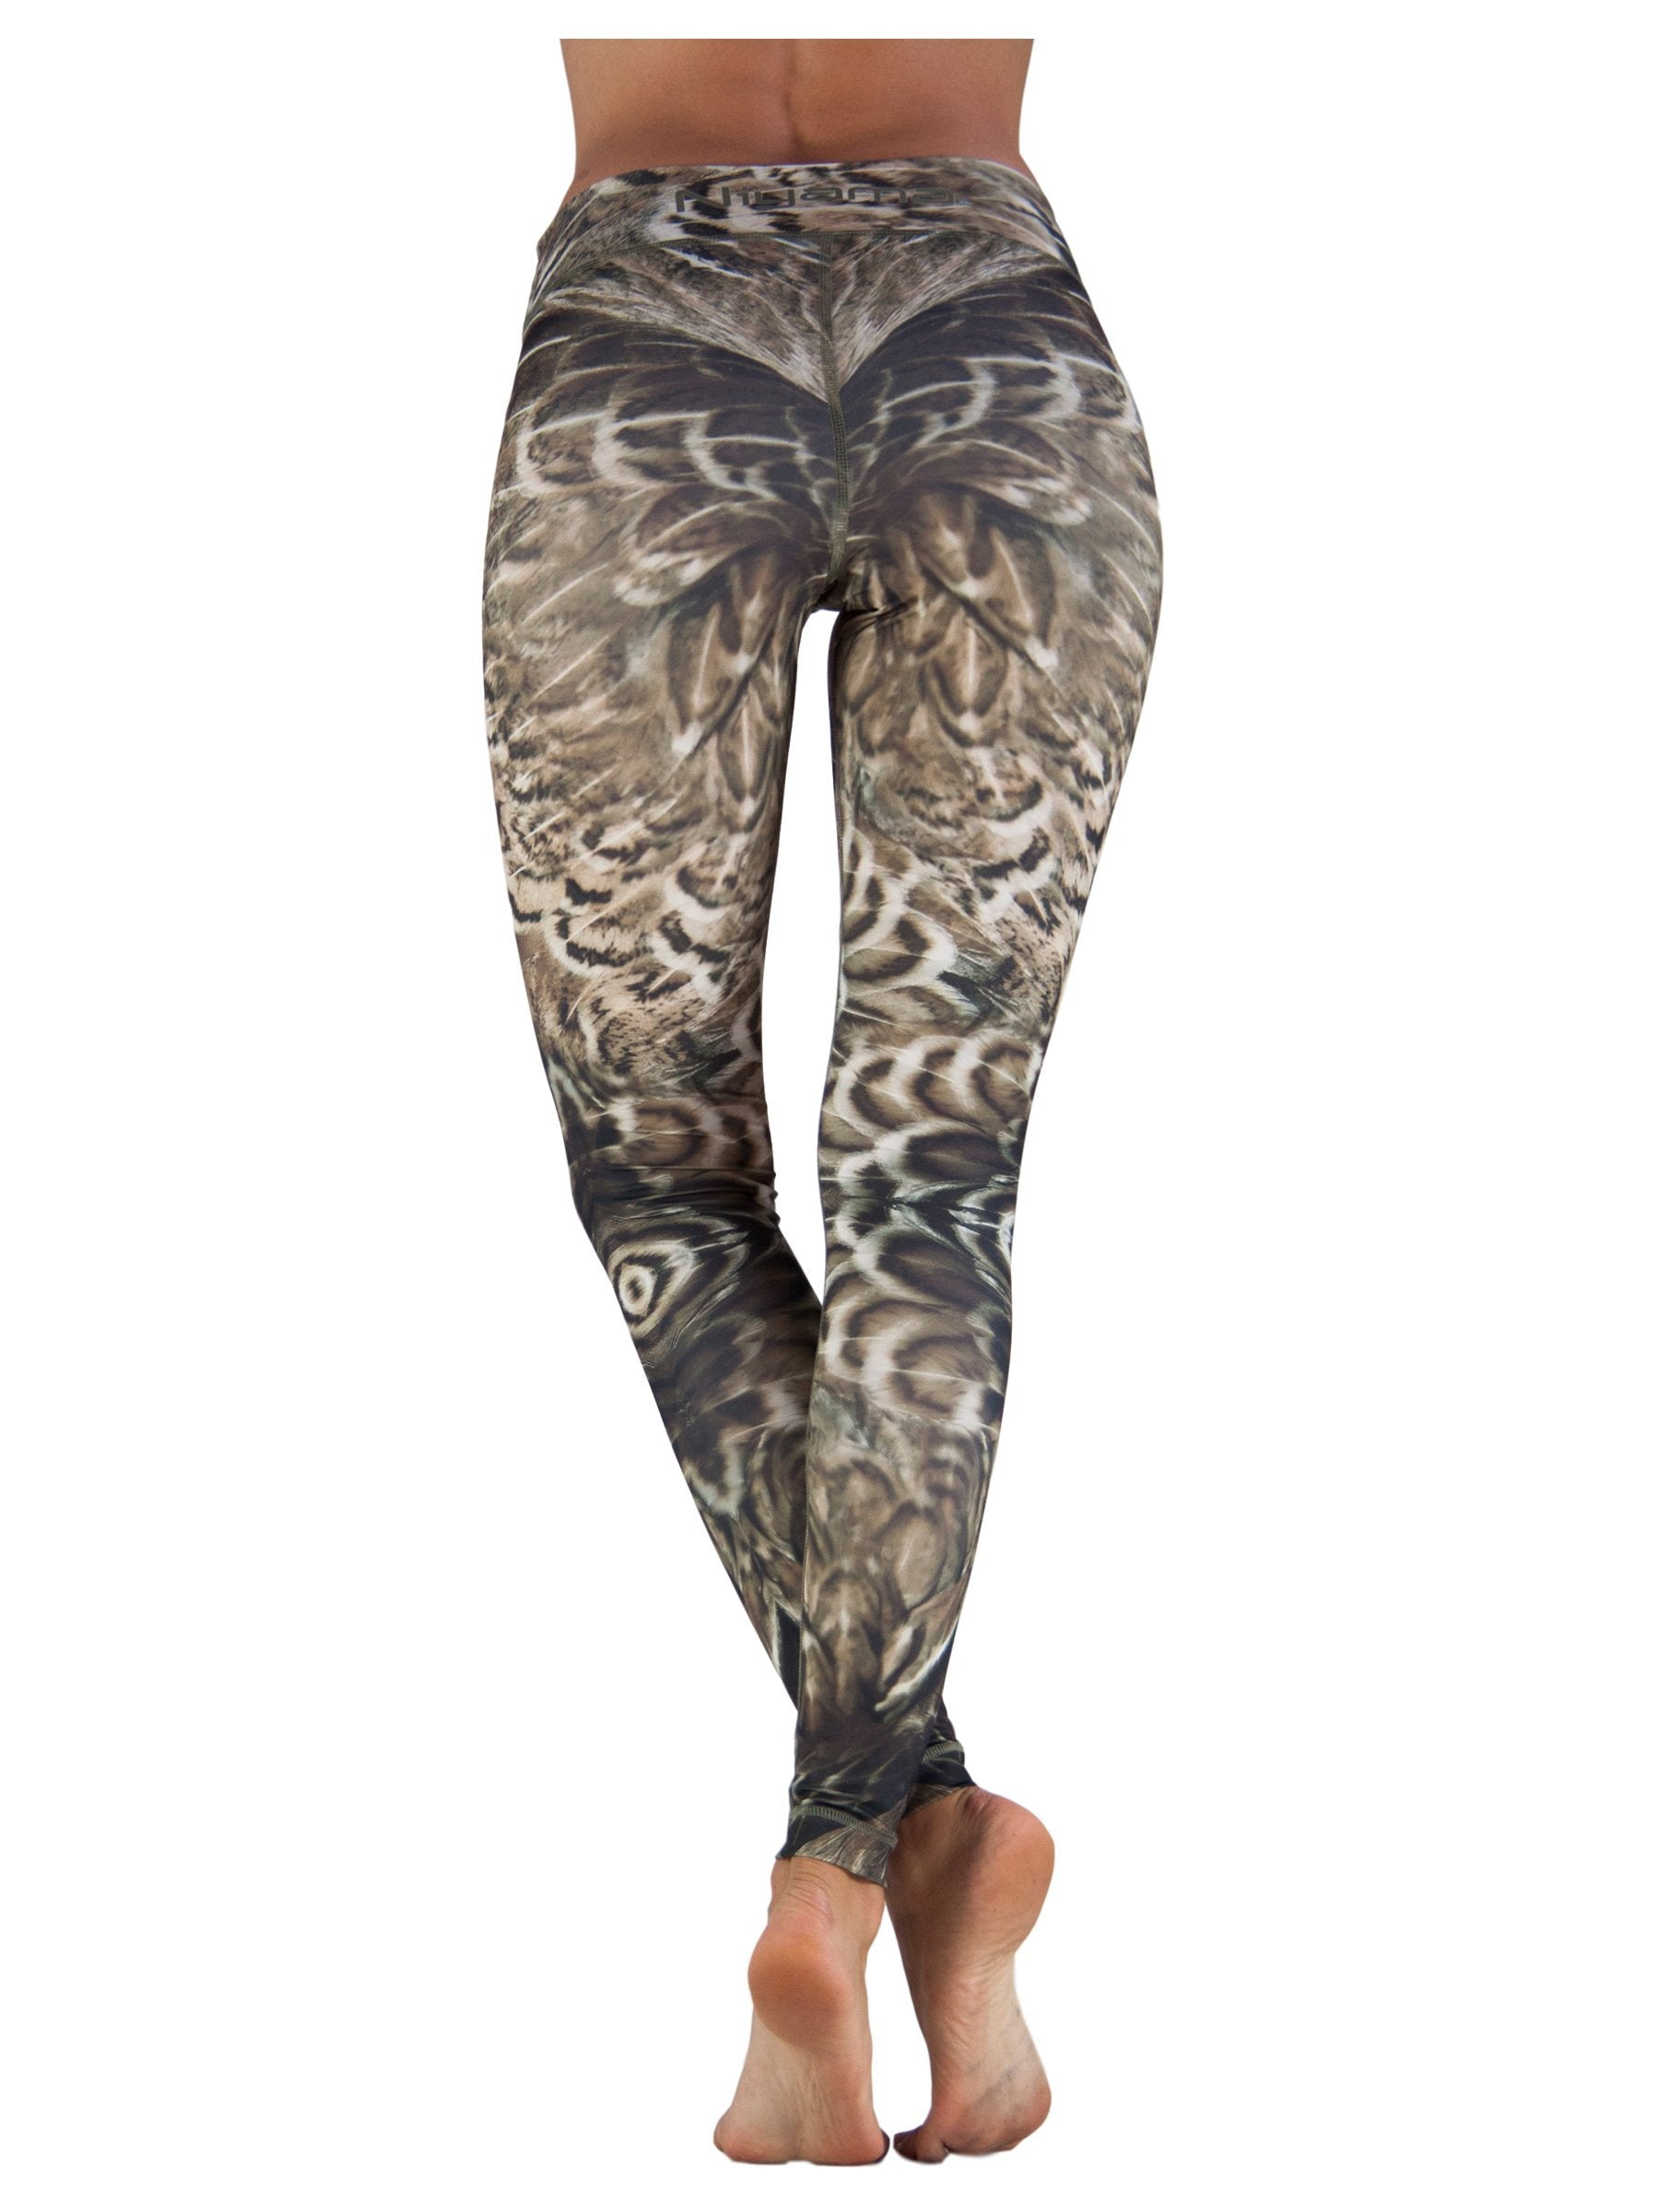 Free Eagle by Niyama - High Quality, Yoga Legging for Movement Artists.